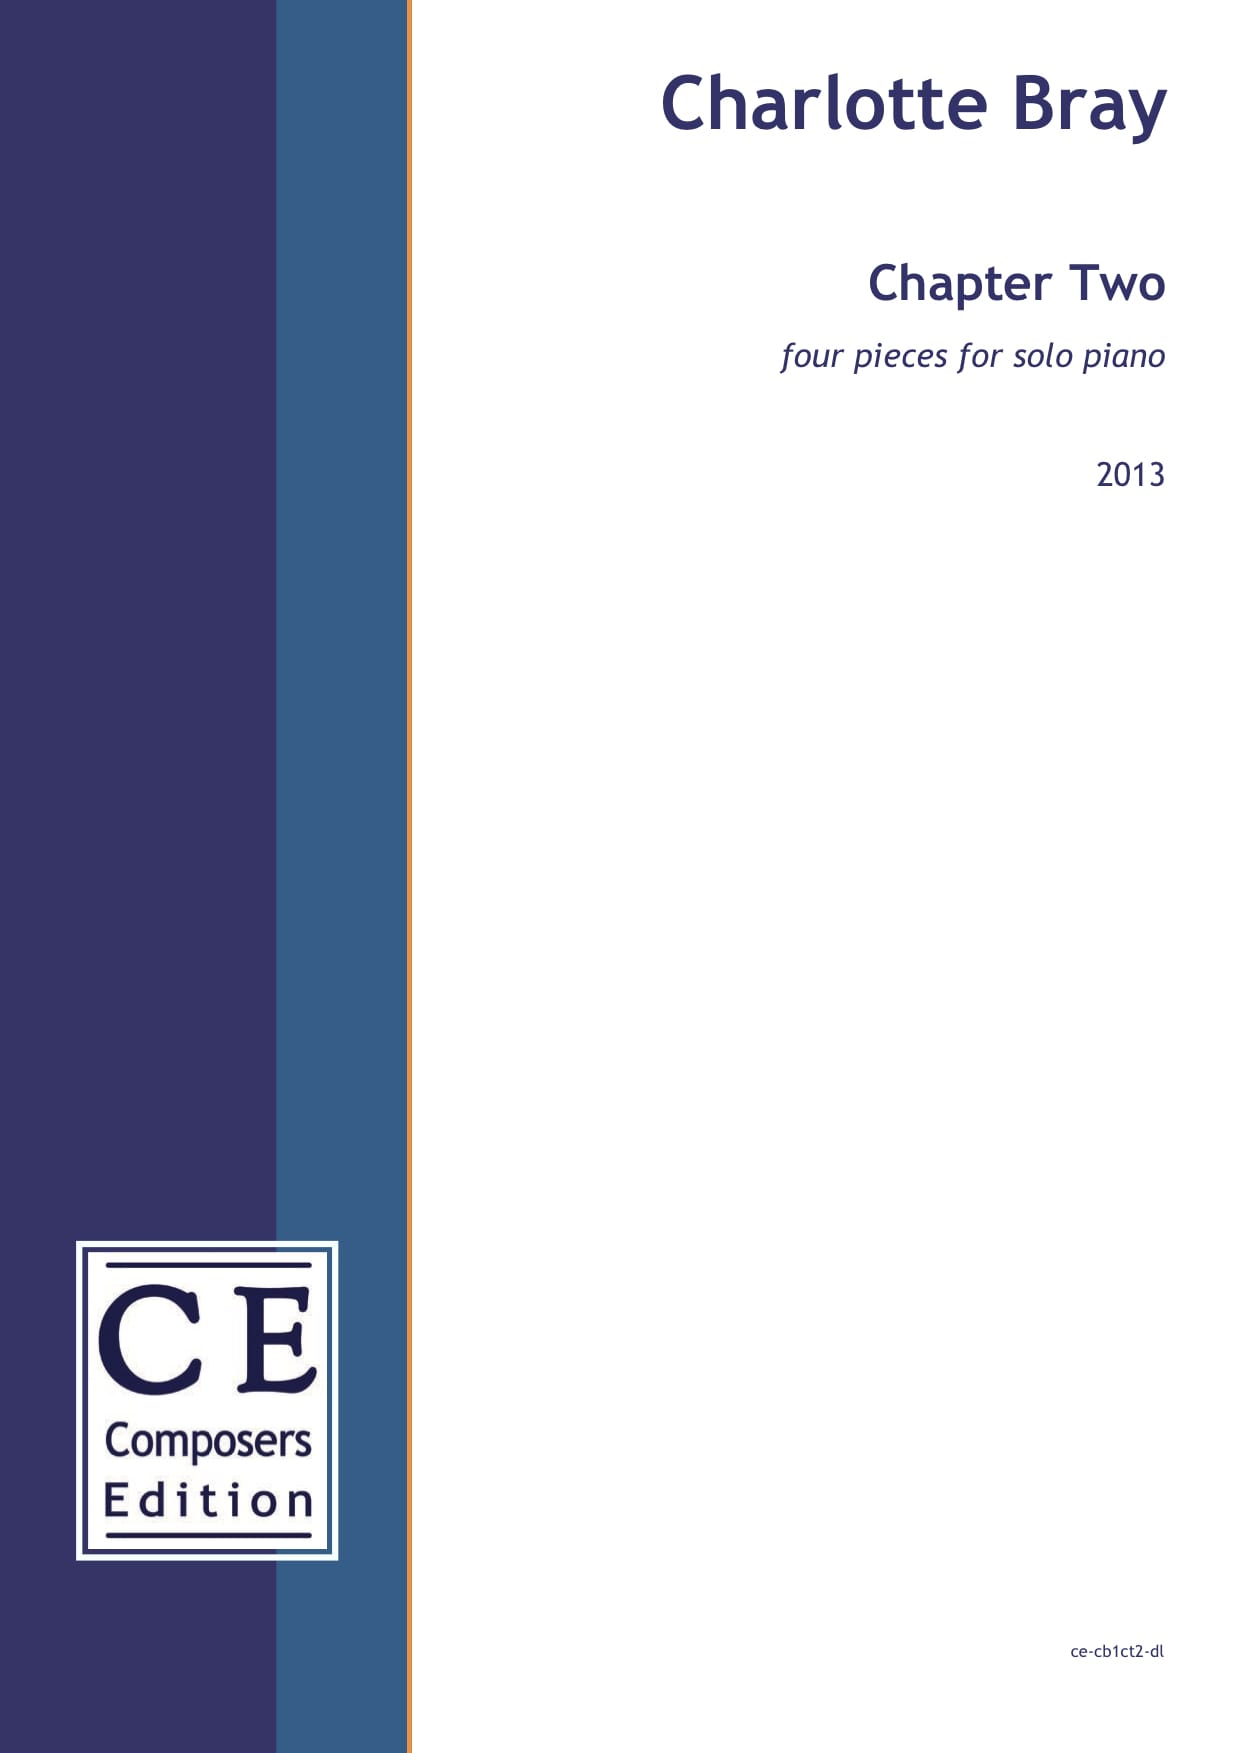 Charlotte Bray: Chapter Two four pieces for solo piano